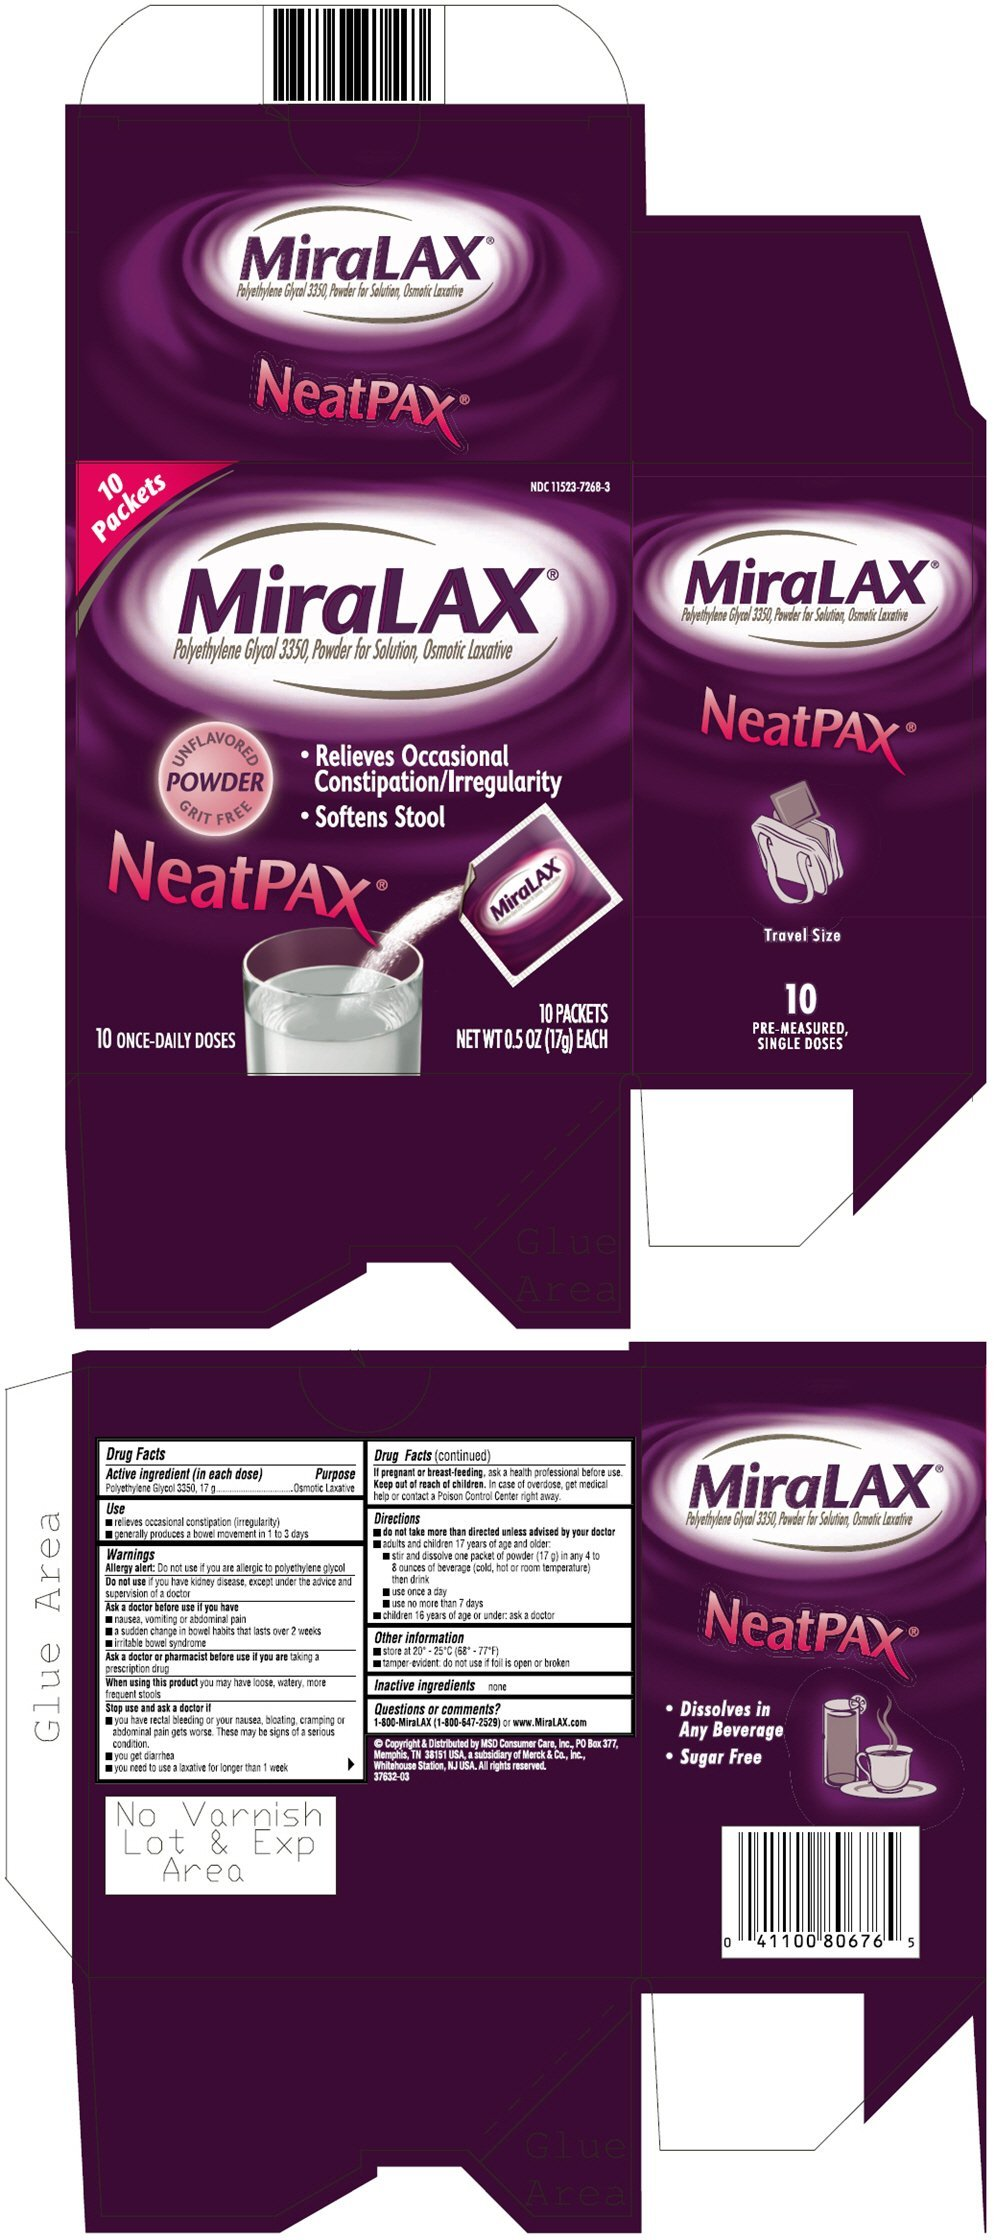 MiraLAX - FDA prescribing information, side effects and uses